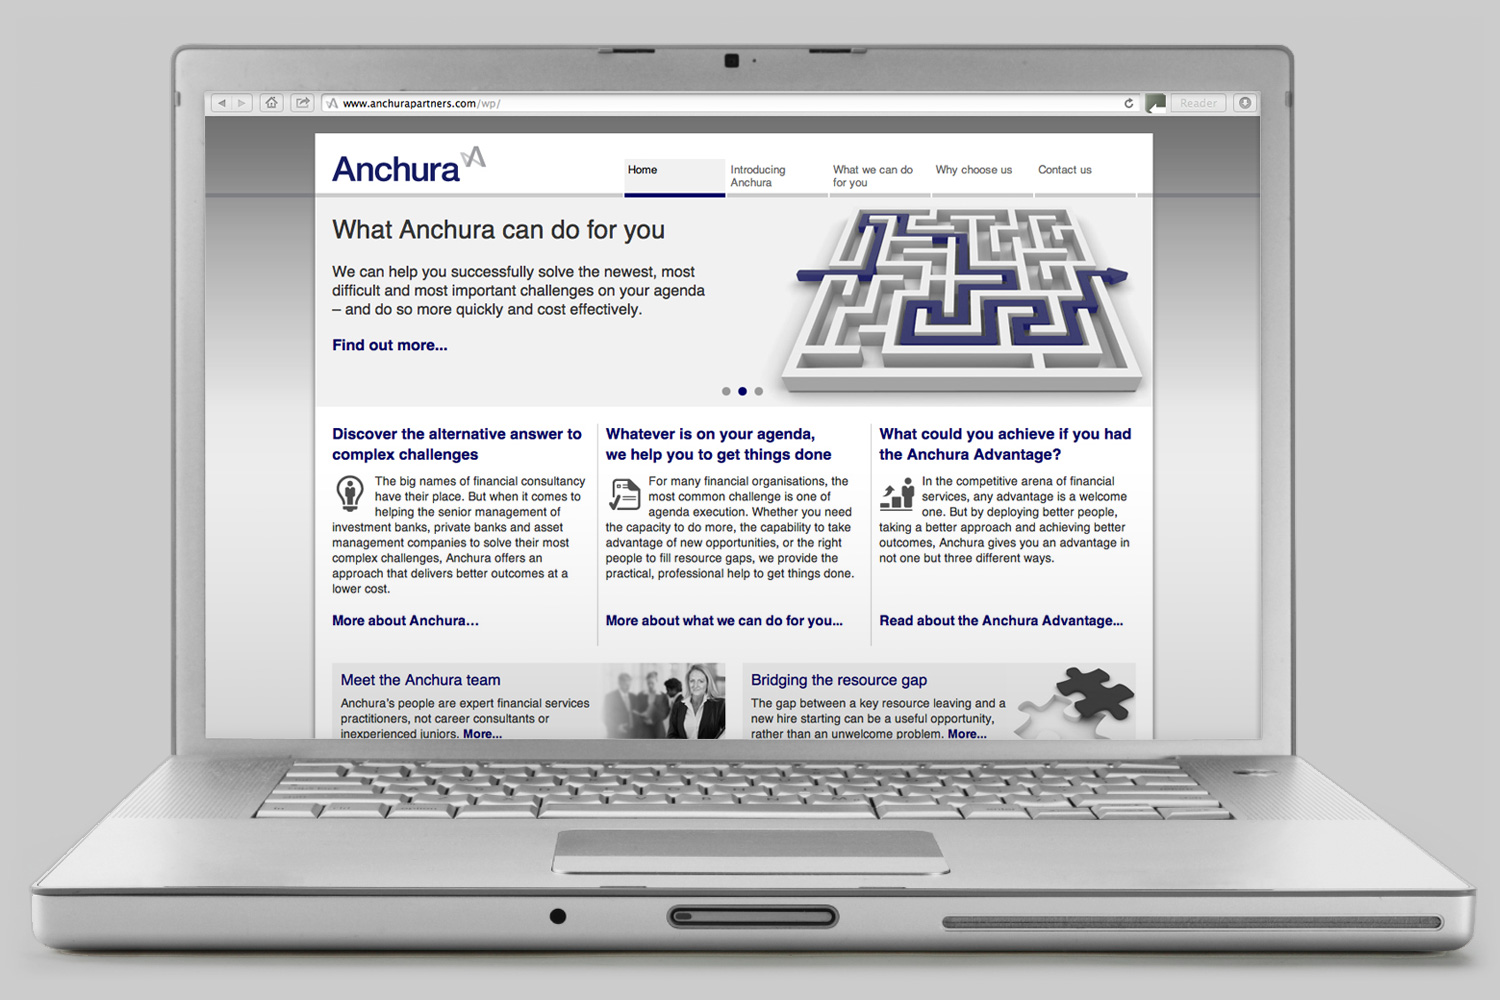 Anchura website